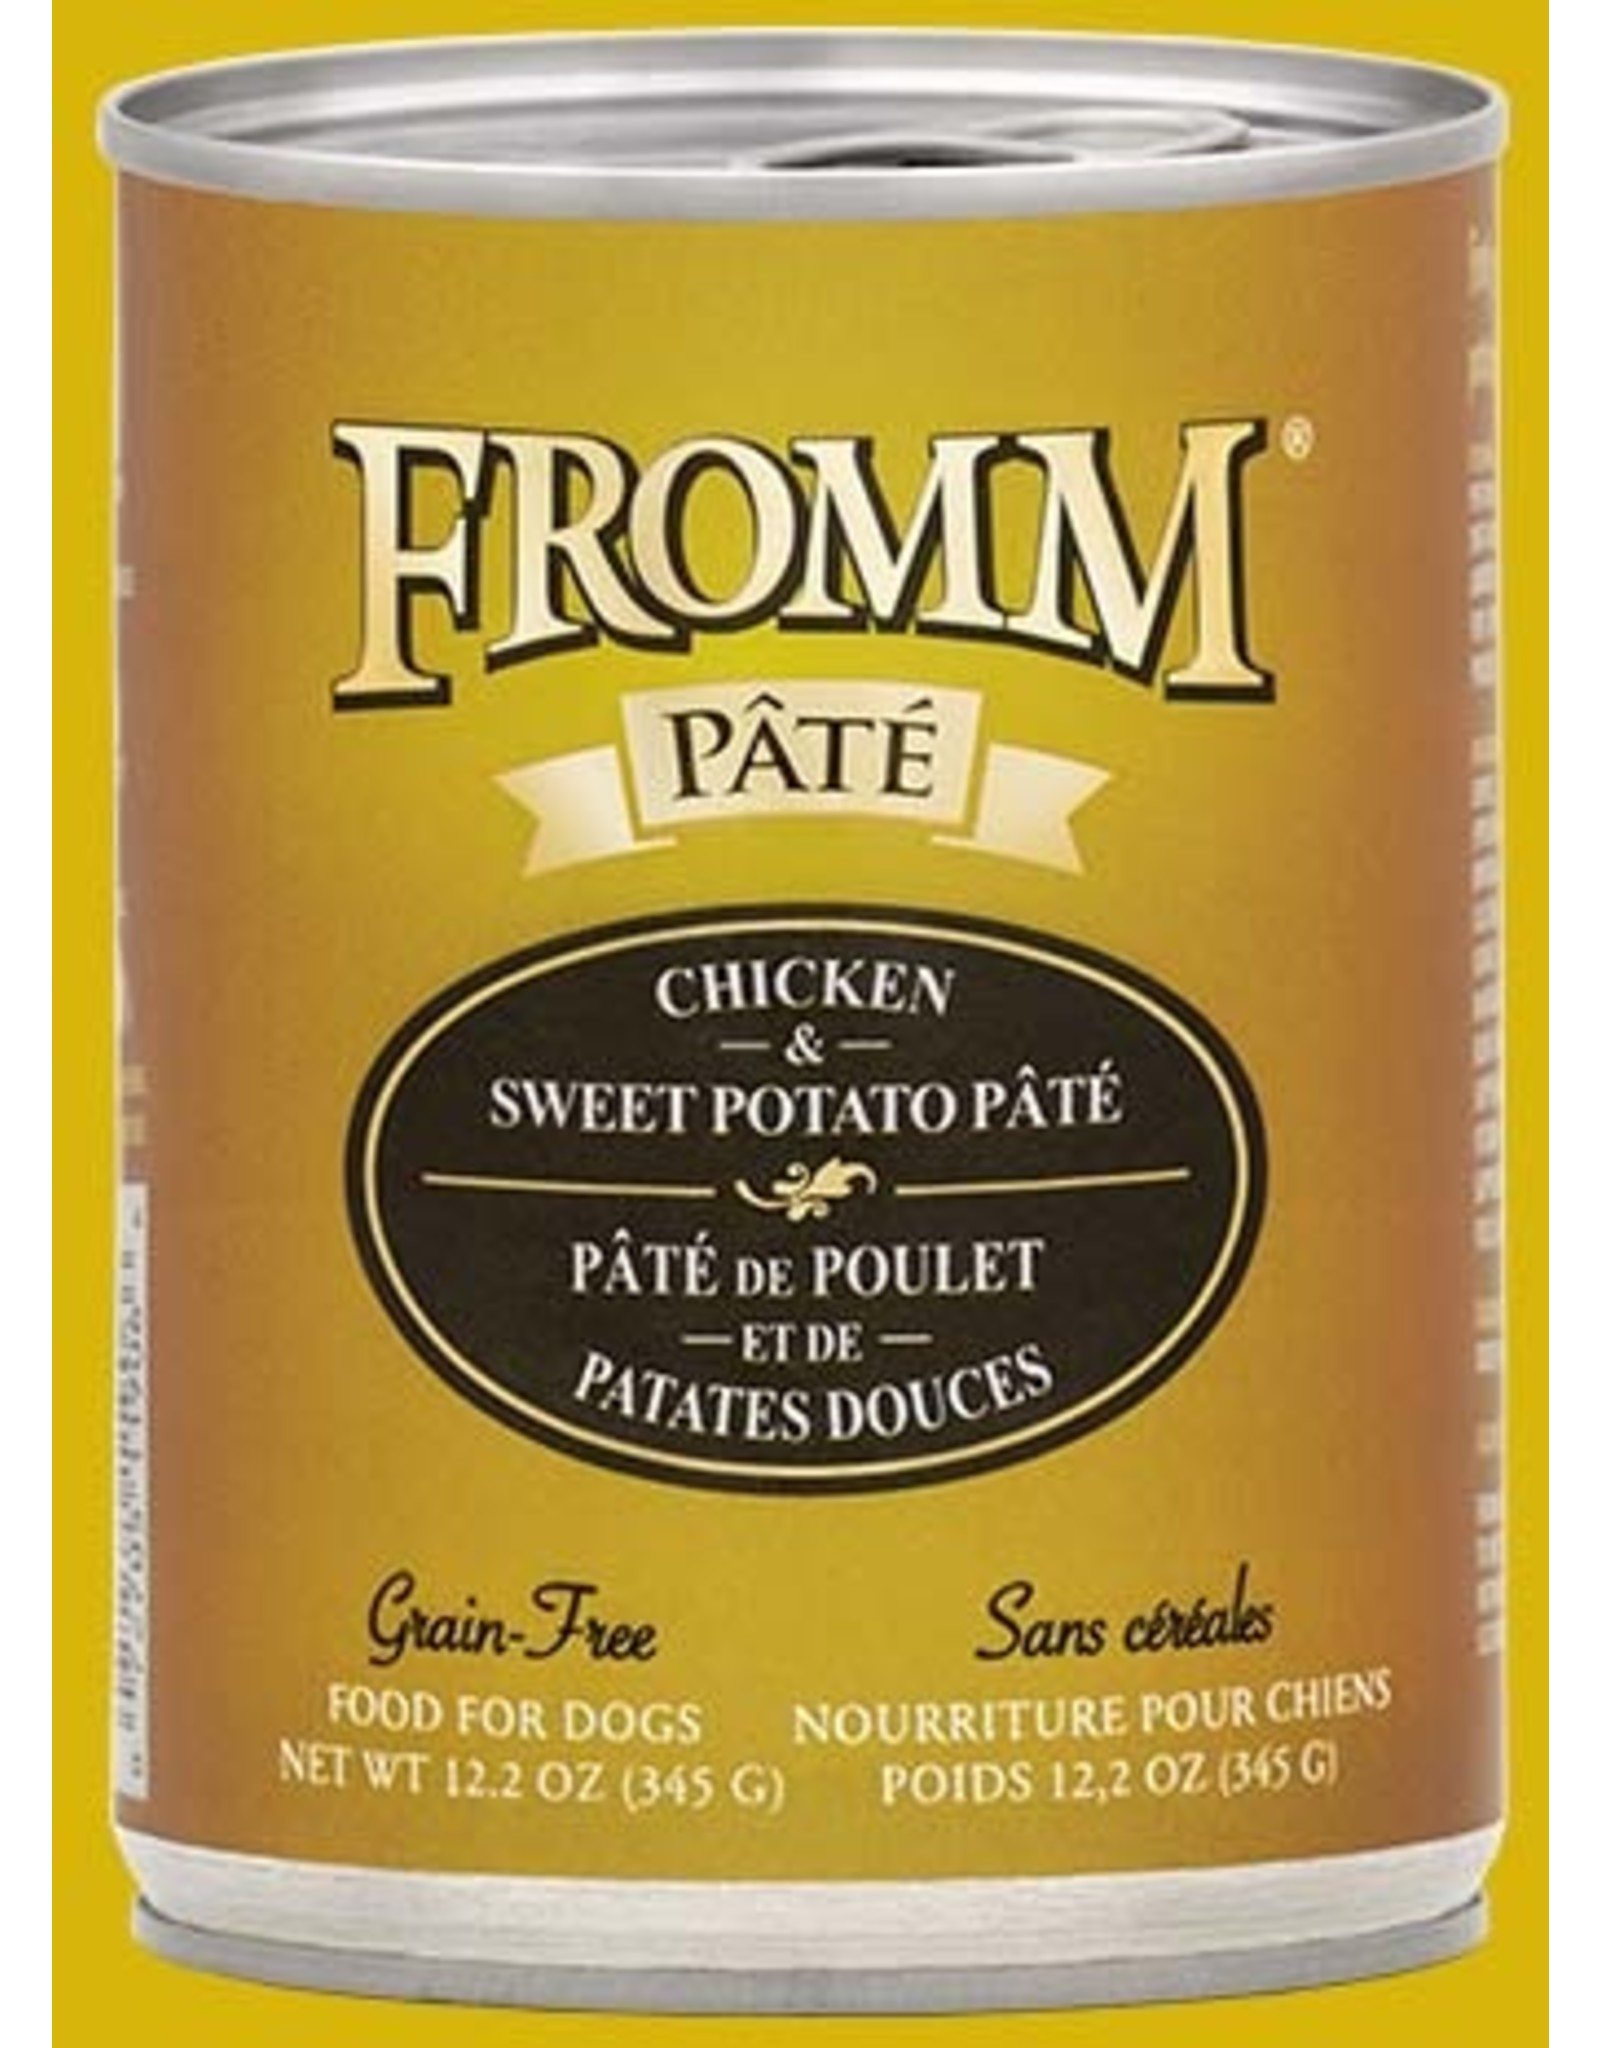 Fromm Fromm Wet Dog Food Chicken & Sweet Potato Pate 12.2oz Can Grain Free